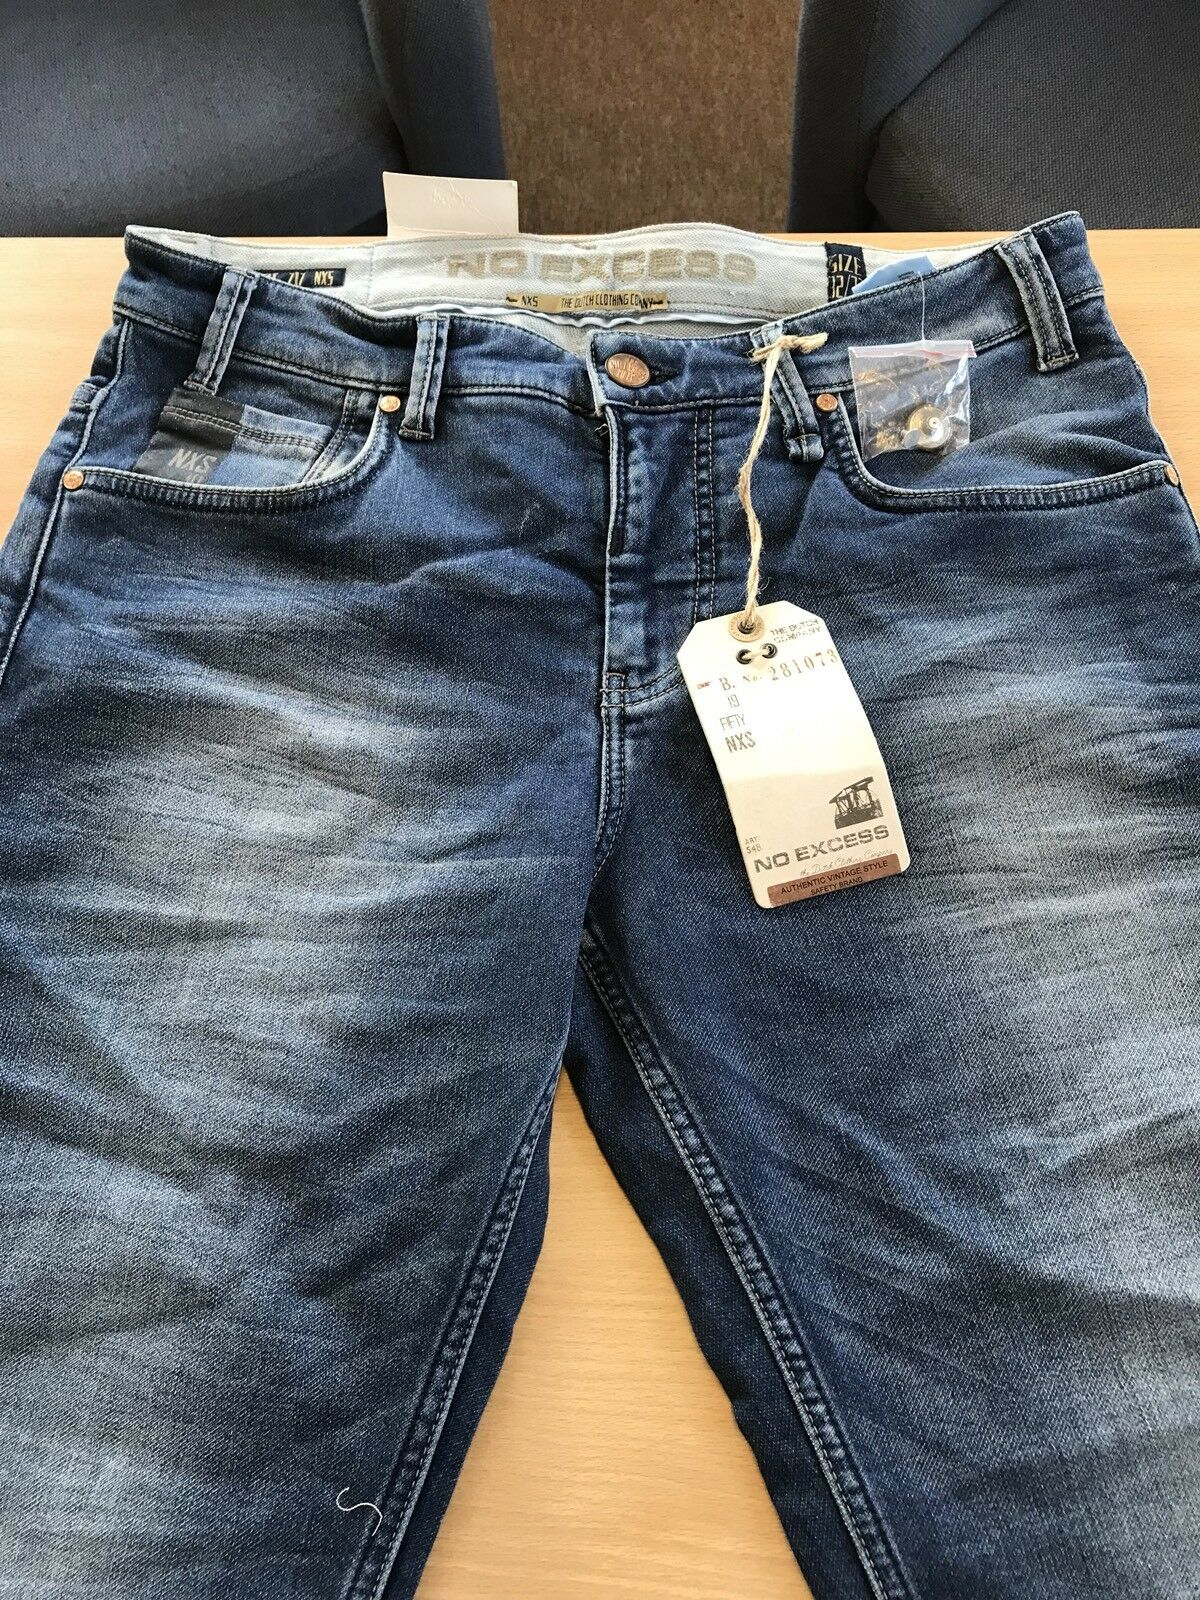 No Excess Jogg Jeans 34w 34L  BNWT Probably Best Jogg Jeans around